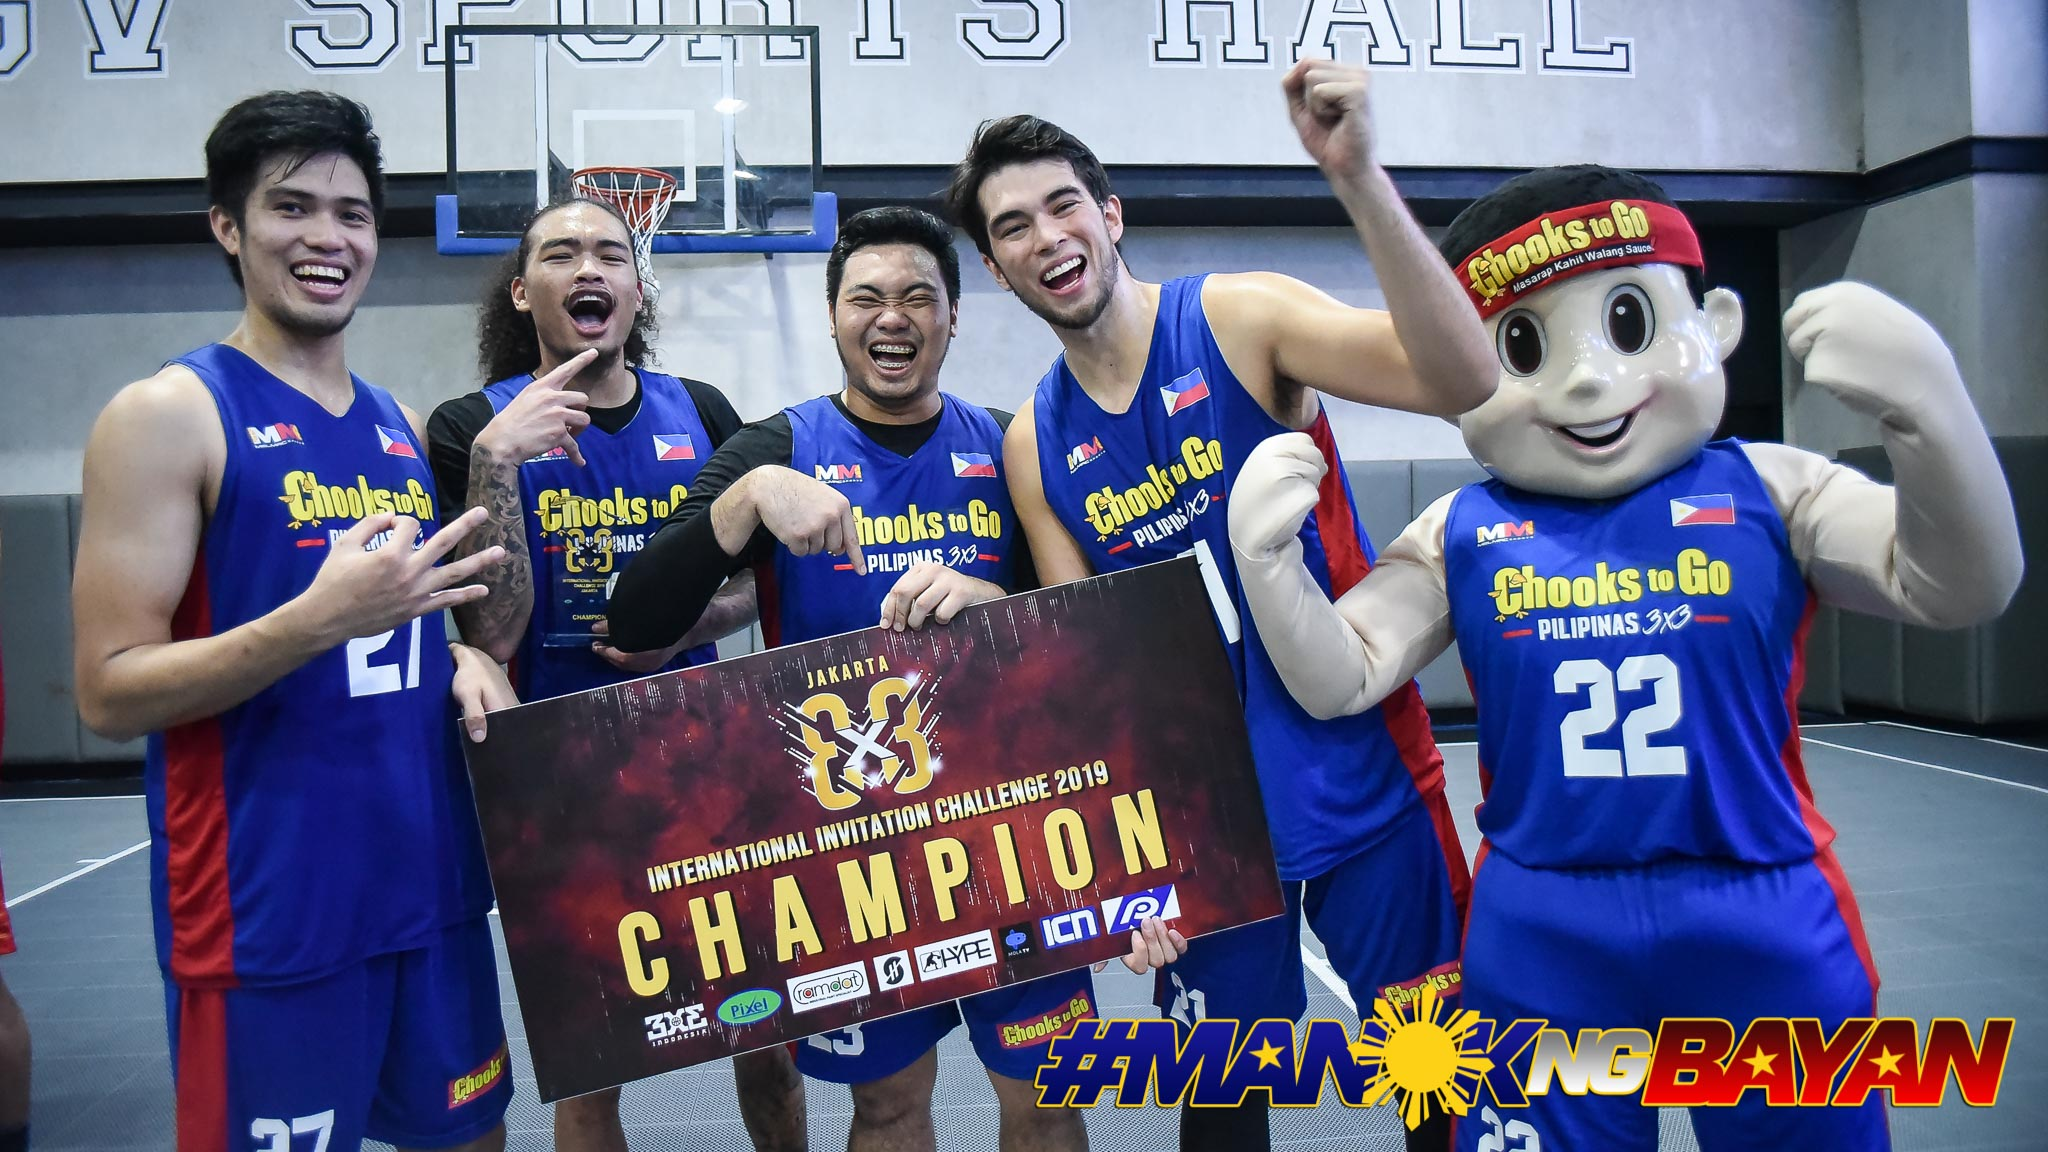 2019-Jakarta-3x3-Chooks-def-Indonesia-Champions Munzon, Pasaol, Rike, Santillan leave Chooks 3x3, enter 2021 PBA Draft 3x3 Basketball Basketball Chooks-to-Go Pilipinas 3x3 News PBA  - philippine sports news